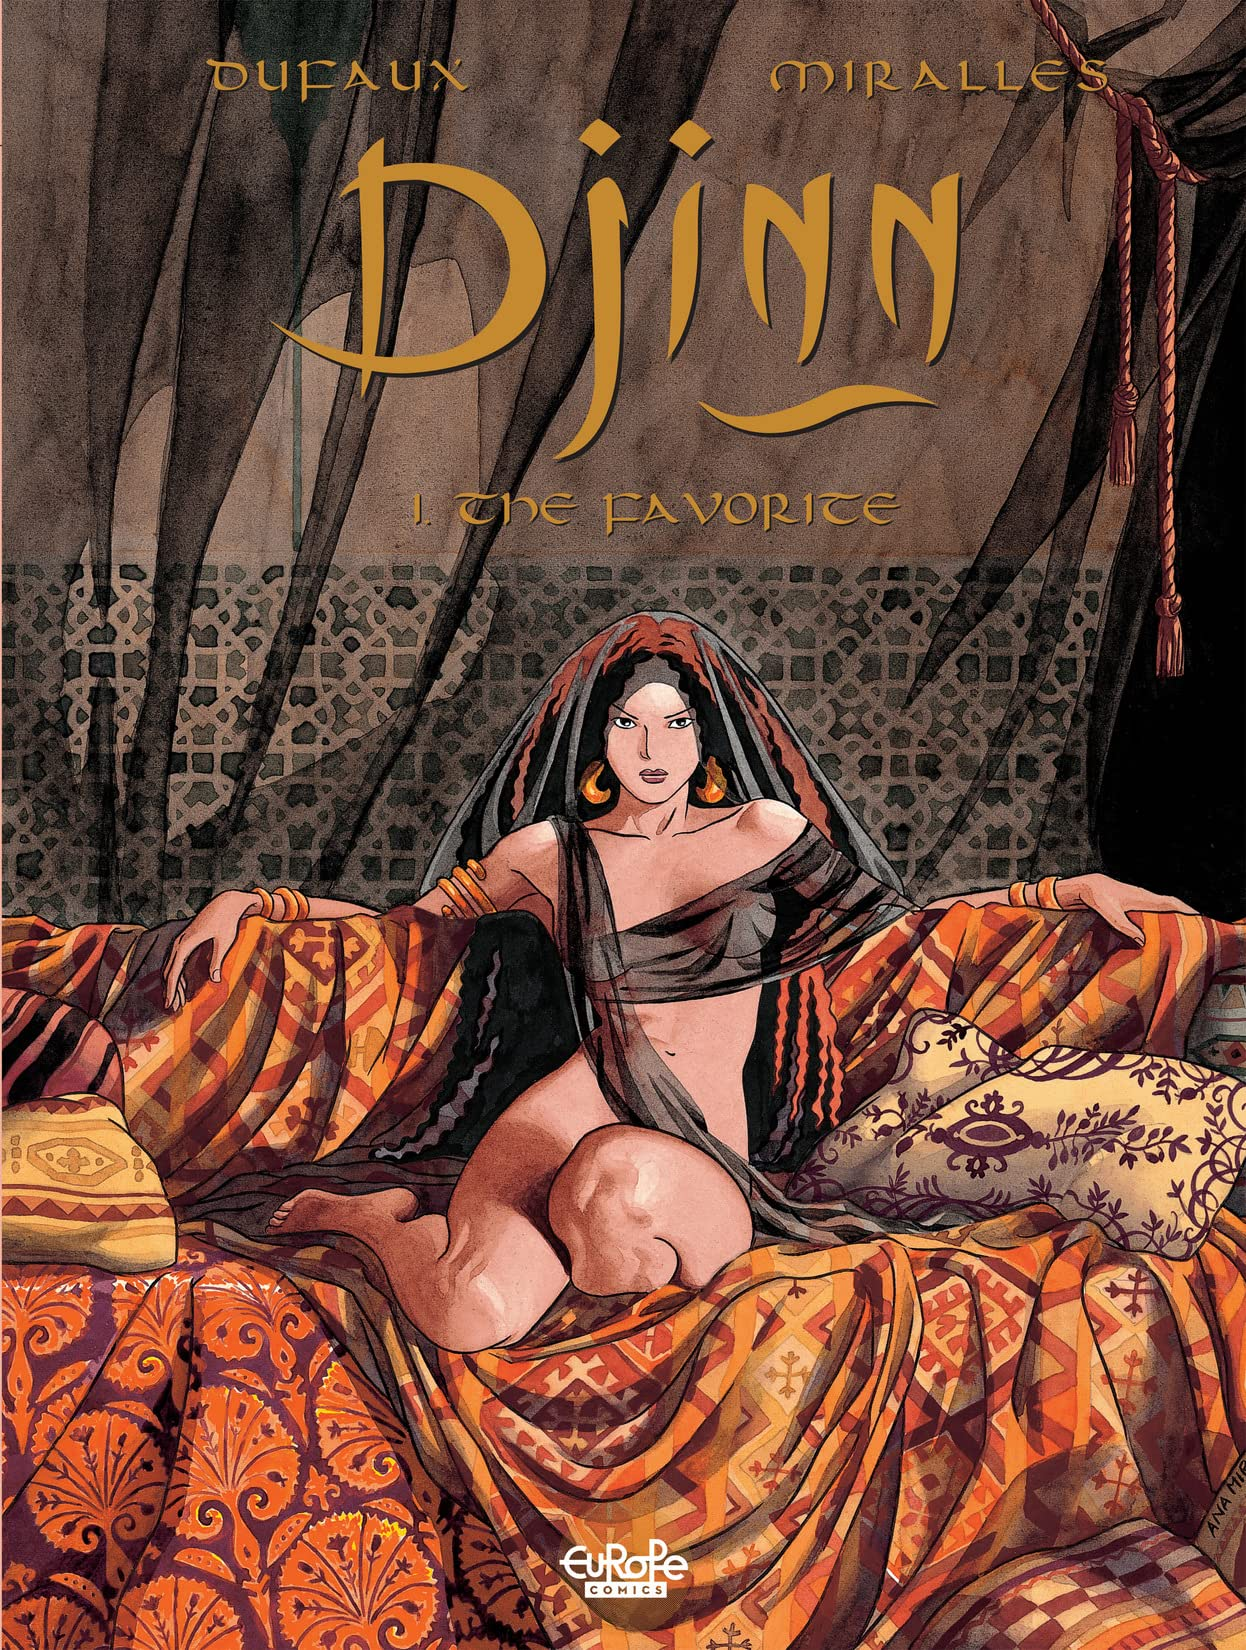 Djinn Vol. 1: The Favorite